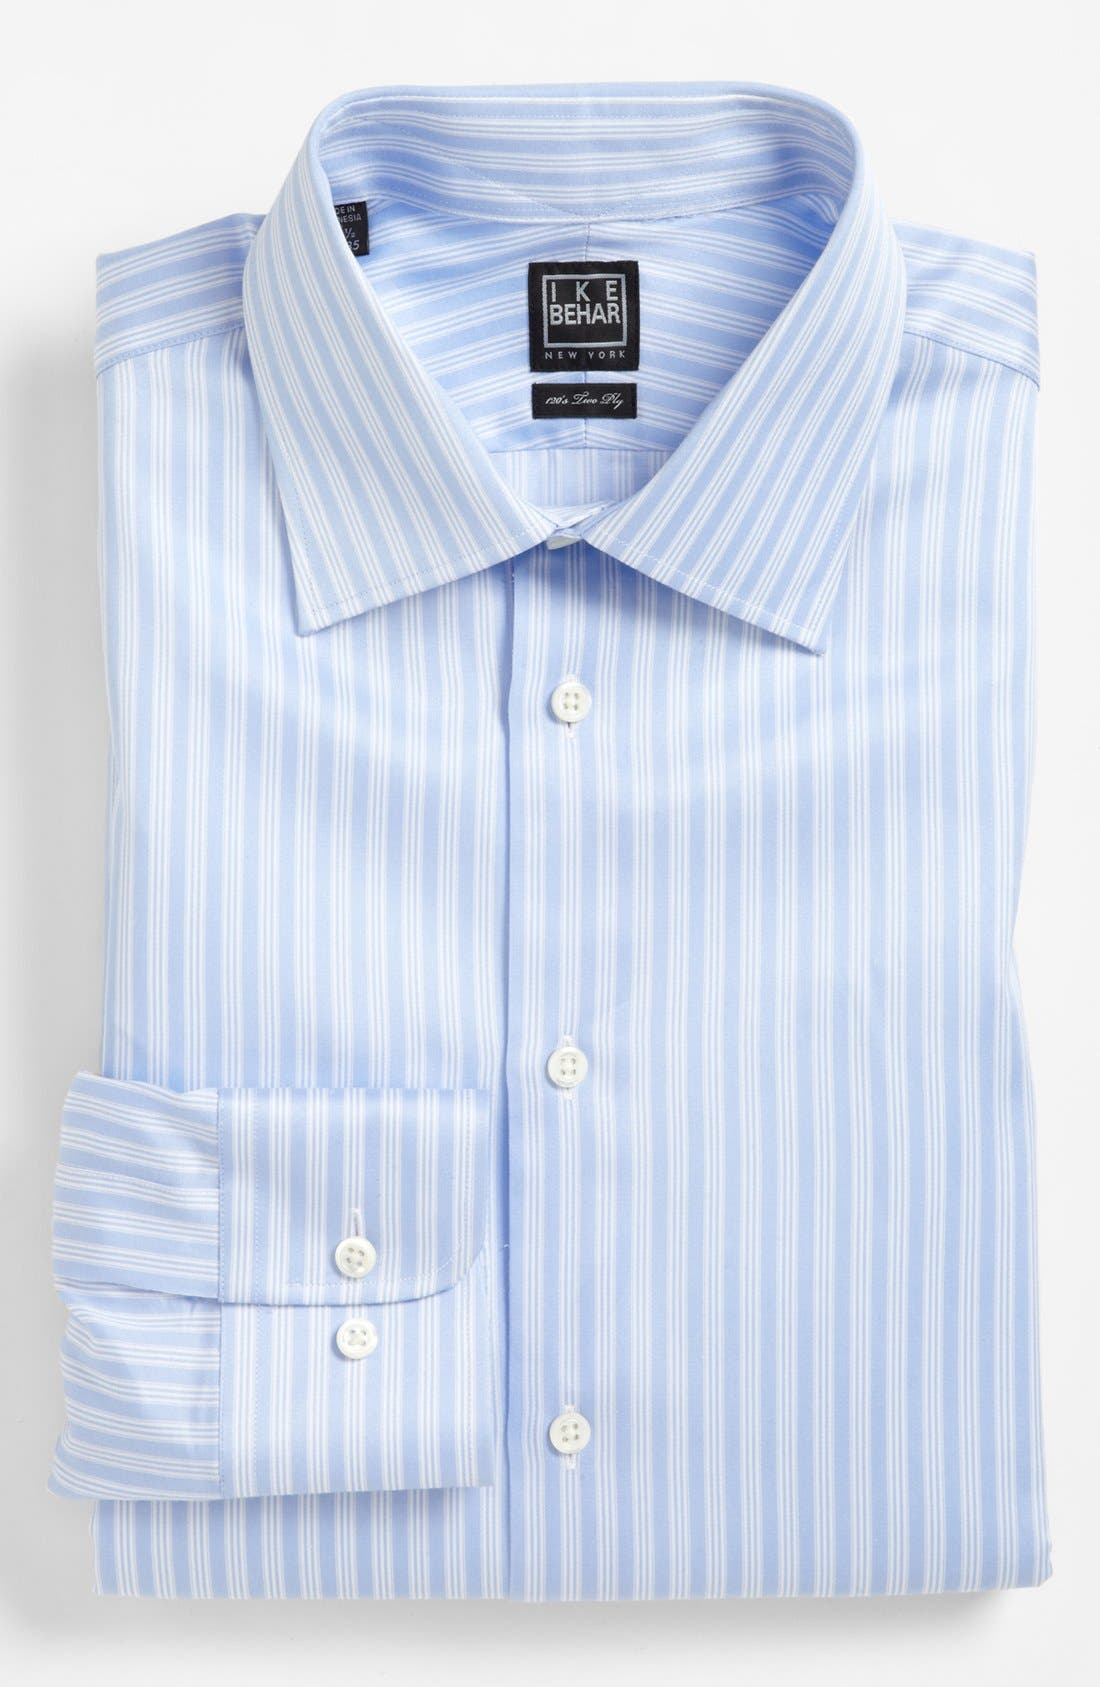 Alternate Image 1 Selected - Ike Behar Regular Fit Dress Shirt